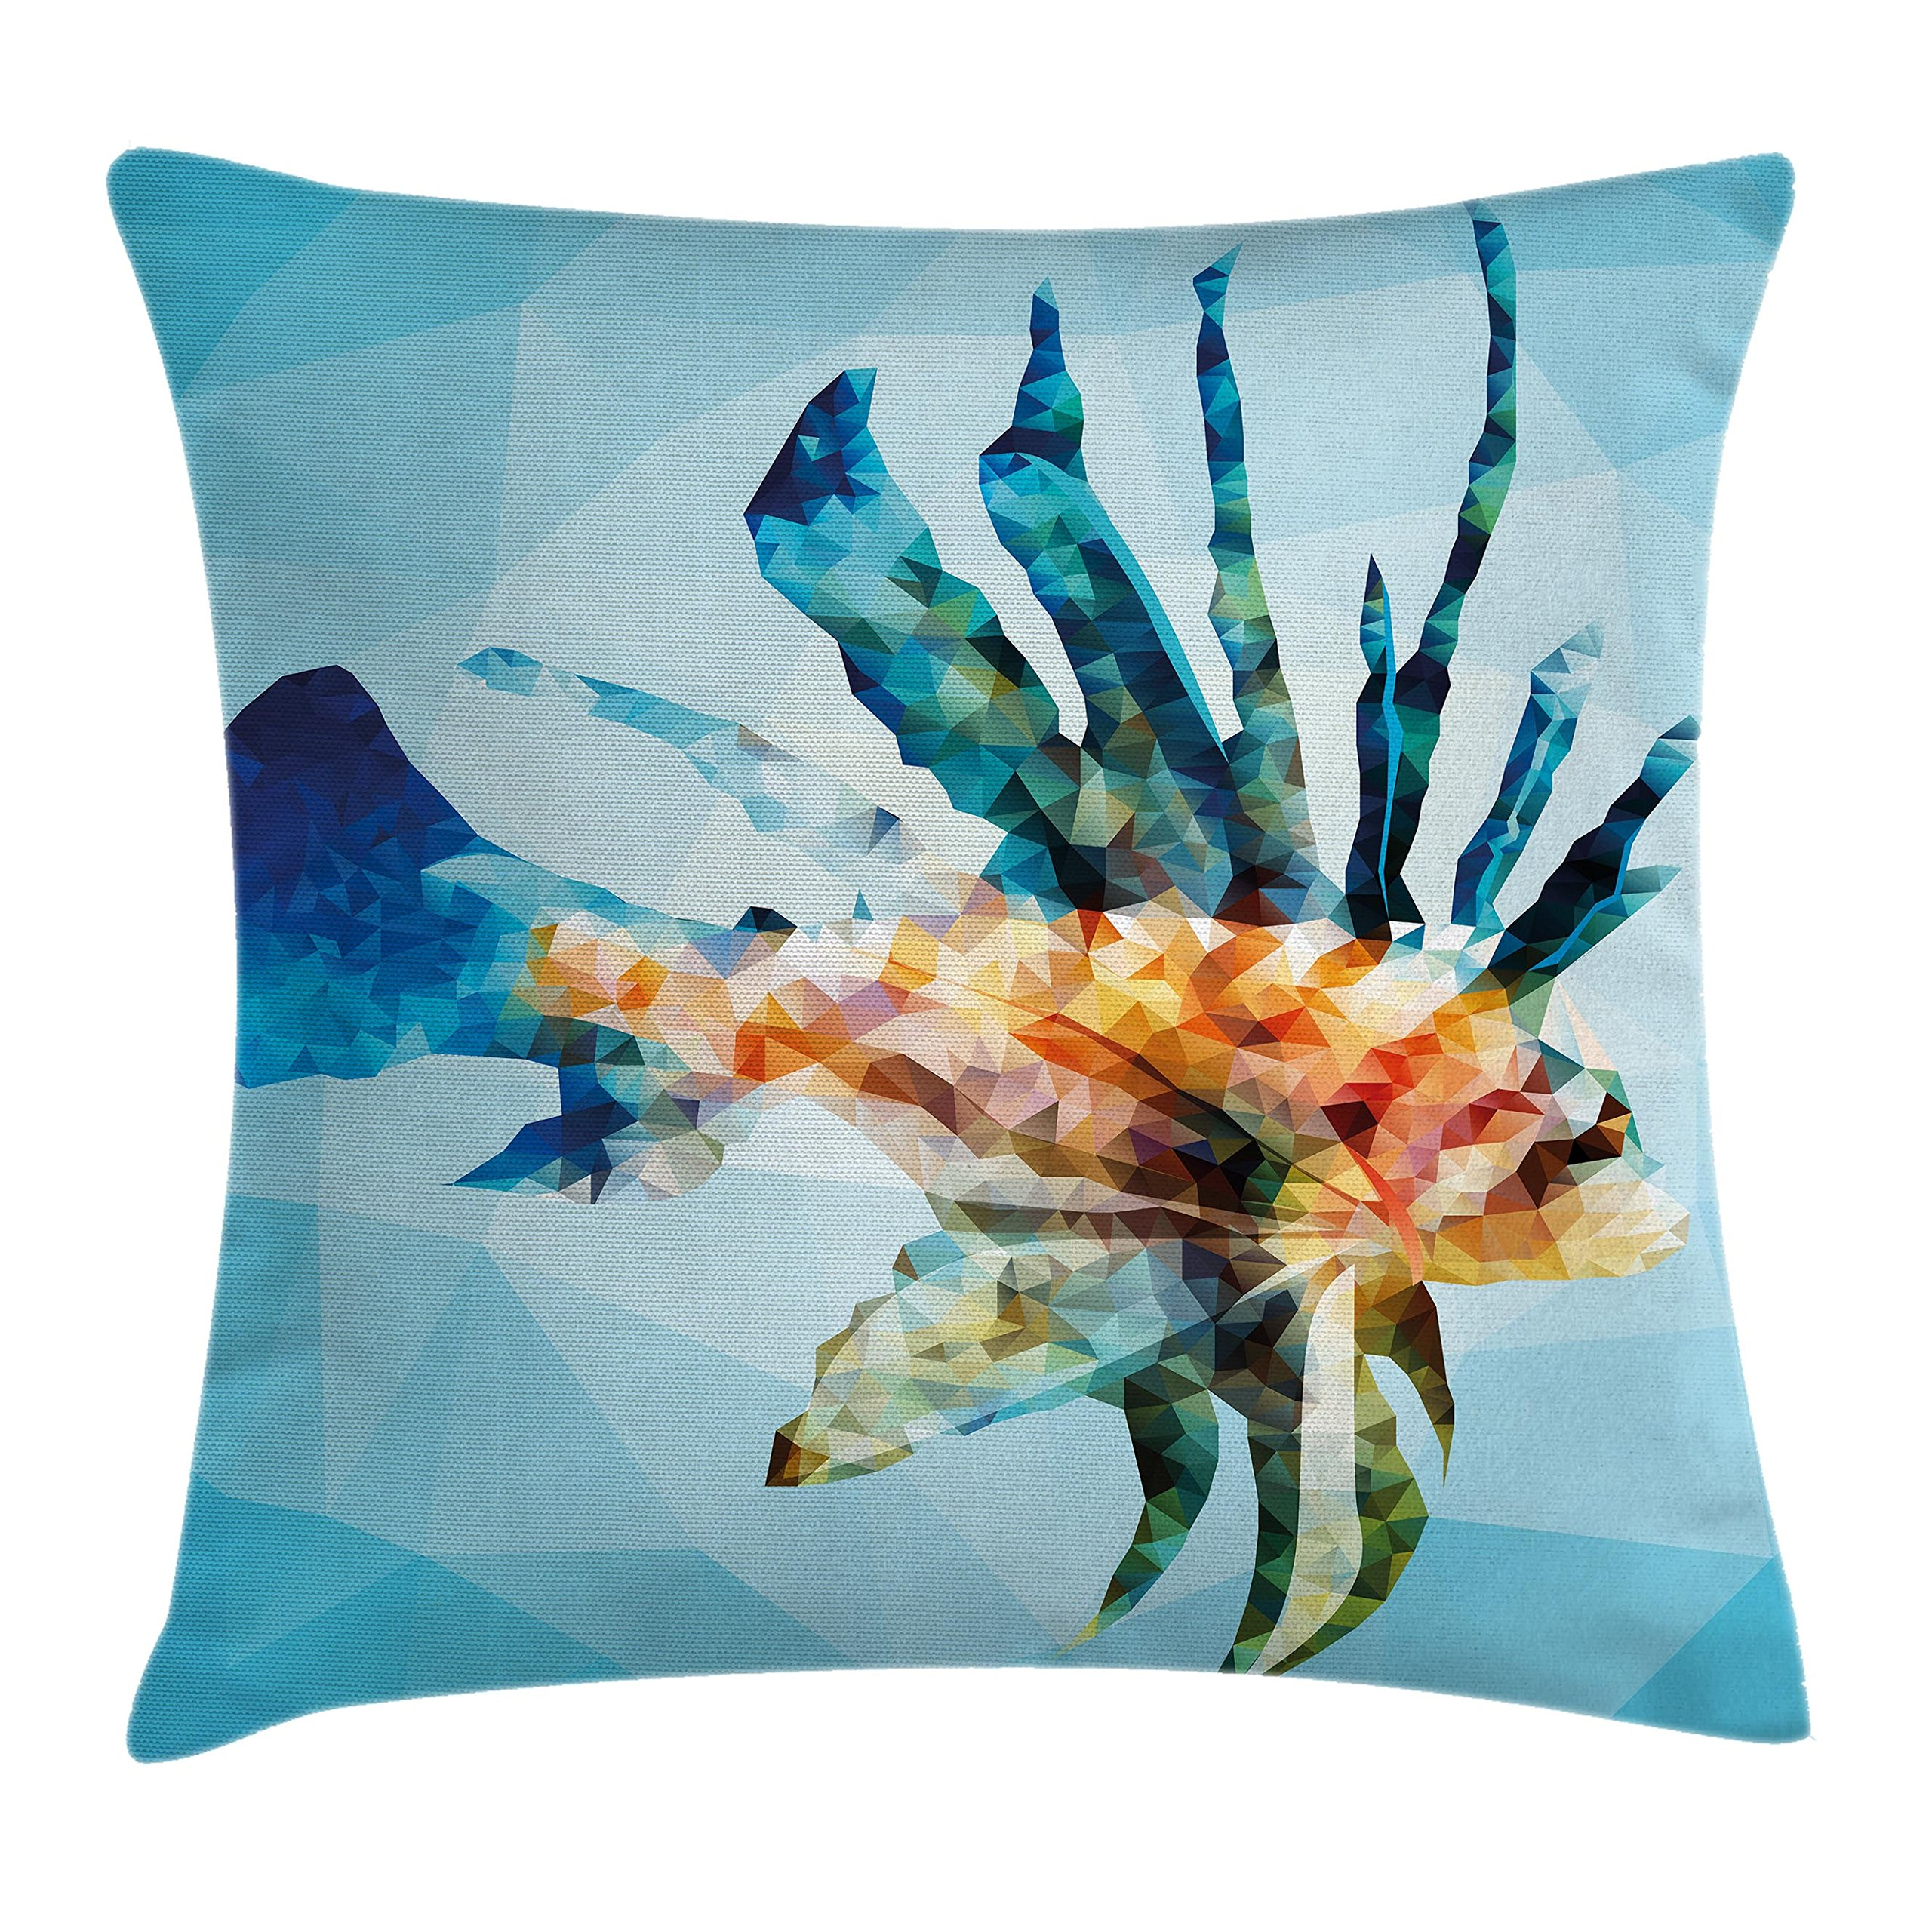 Ambesonne Fish Decor Throw Pillow Cushion Cover, Underwater Theme Ornamental Fish in The Style of Polygon Graphics Pattern, Decorative Square Accent Pillow Case, 16 X 16 inches, Blue and Sky Blue